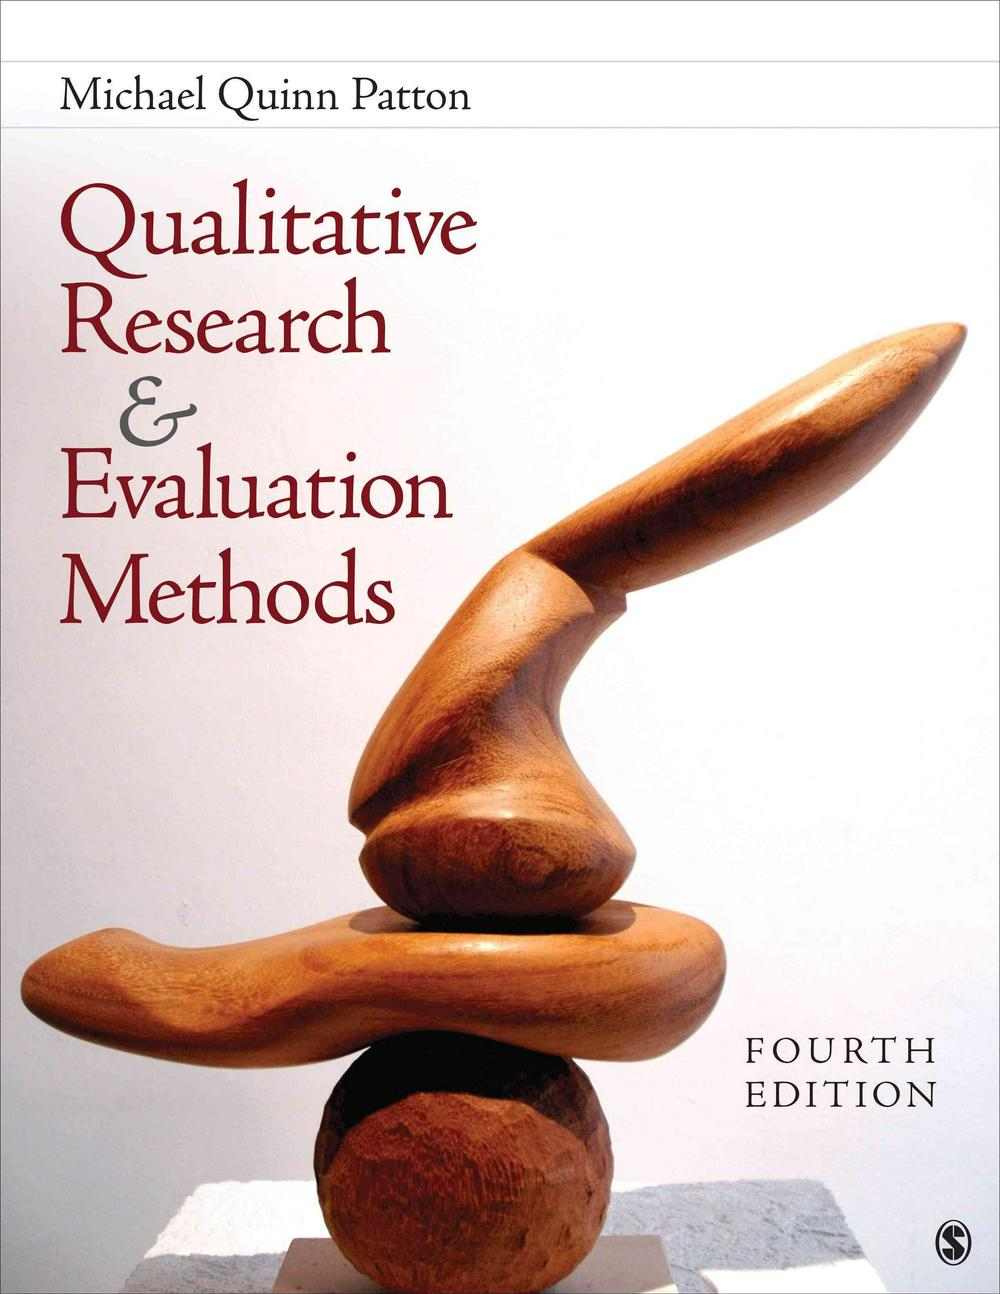 Qualitative Research & Evaluation Methods by Michael Quinn Patton, ISBN: 9781412972123